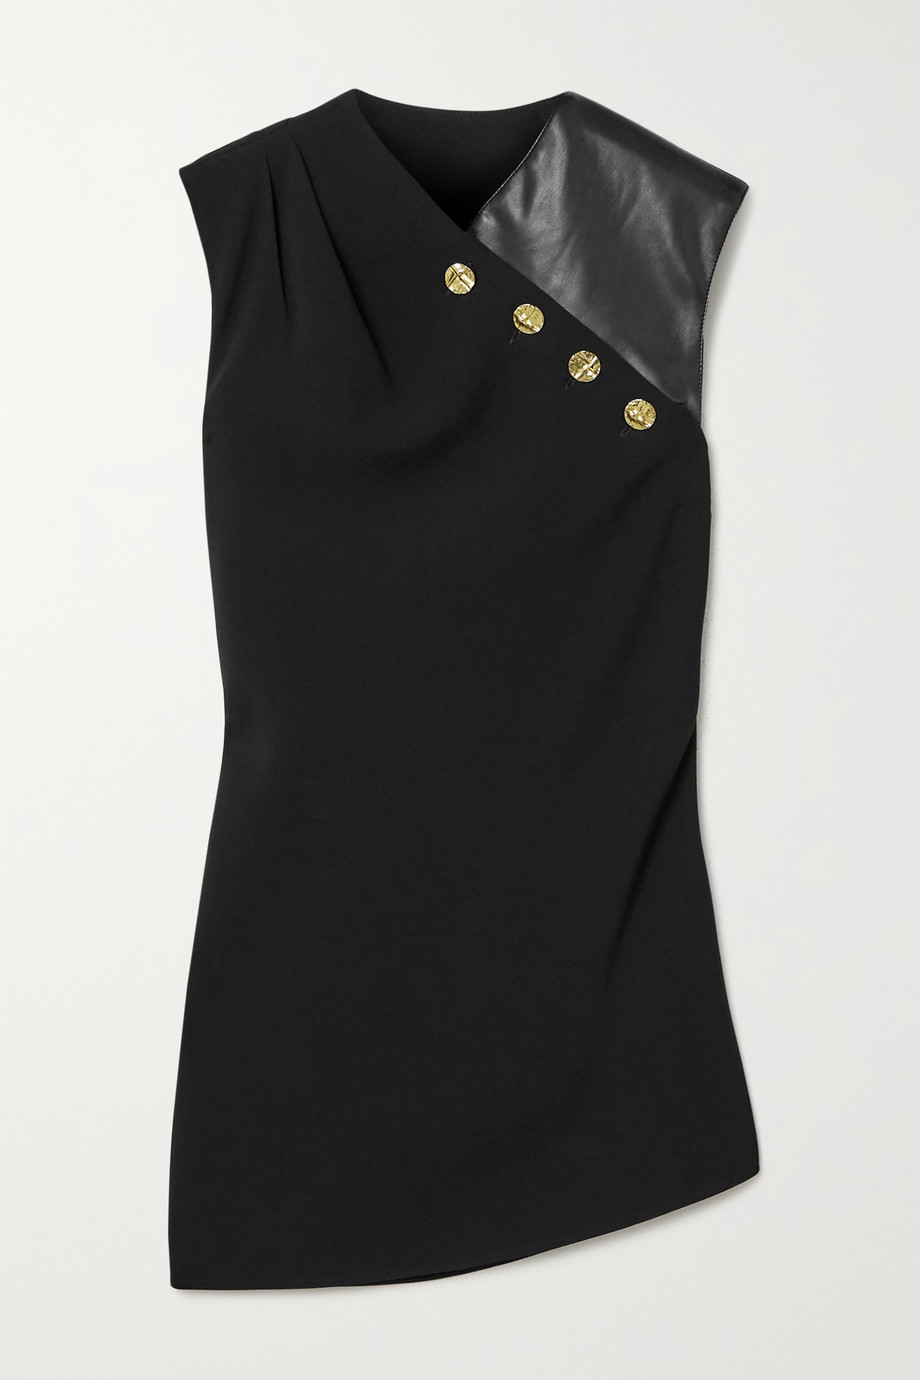 PROENZA SCHOULER Button-embellished crepe and faux leather top